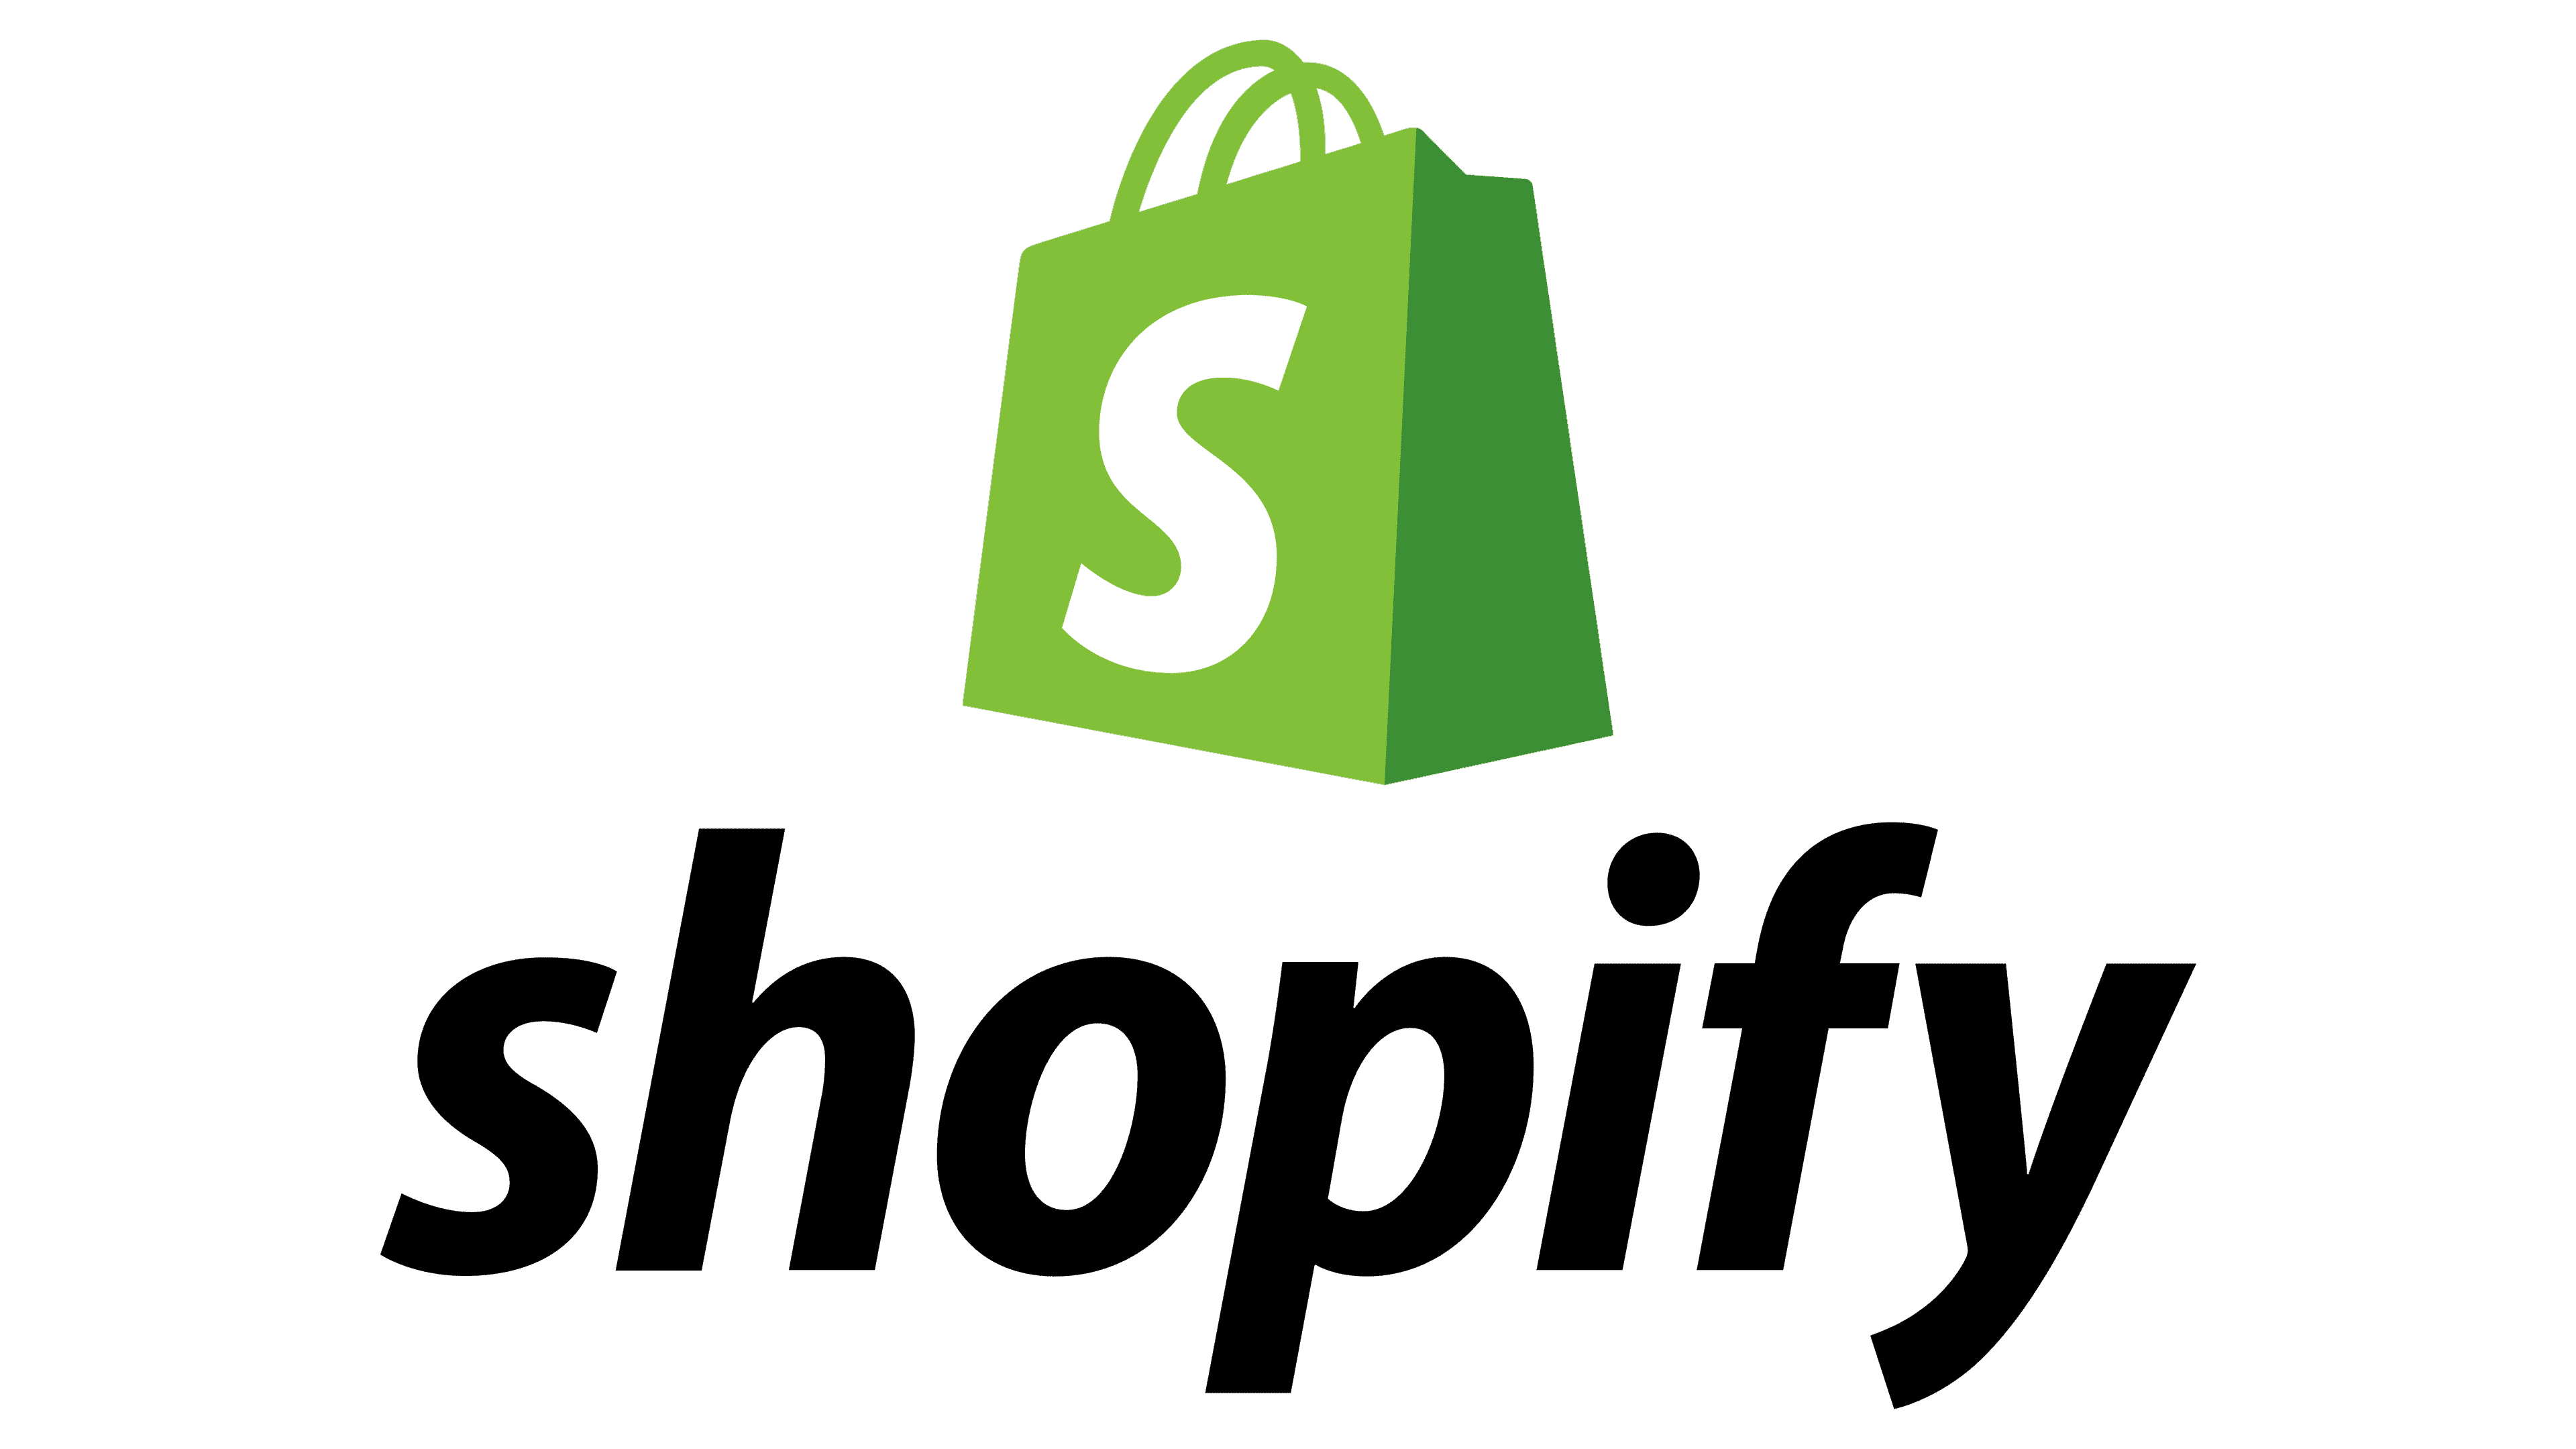 Shopify Logo, PNG, Symbol, History, Meaning